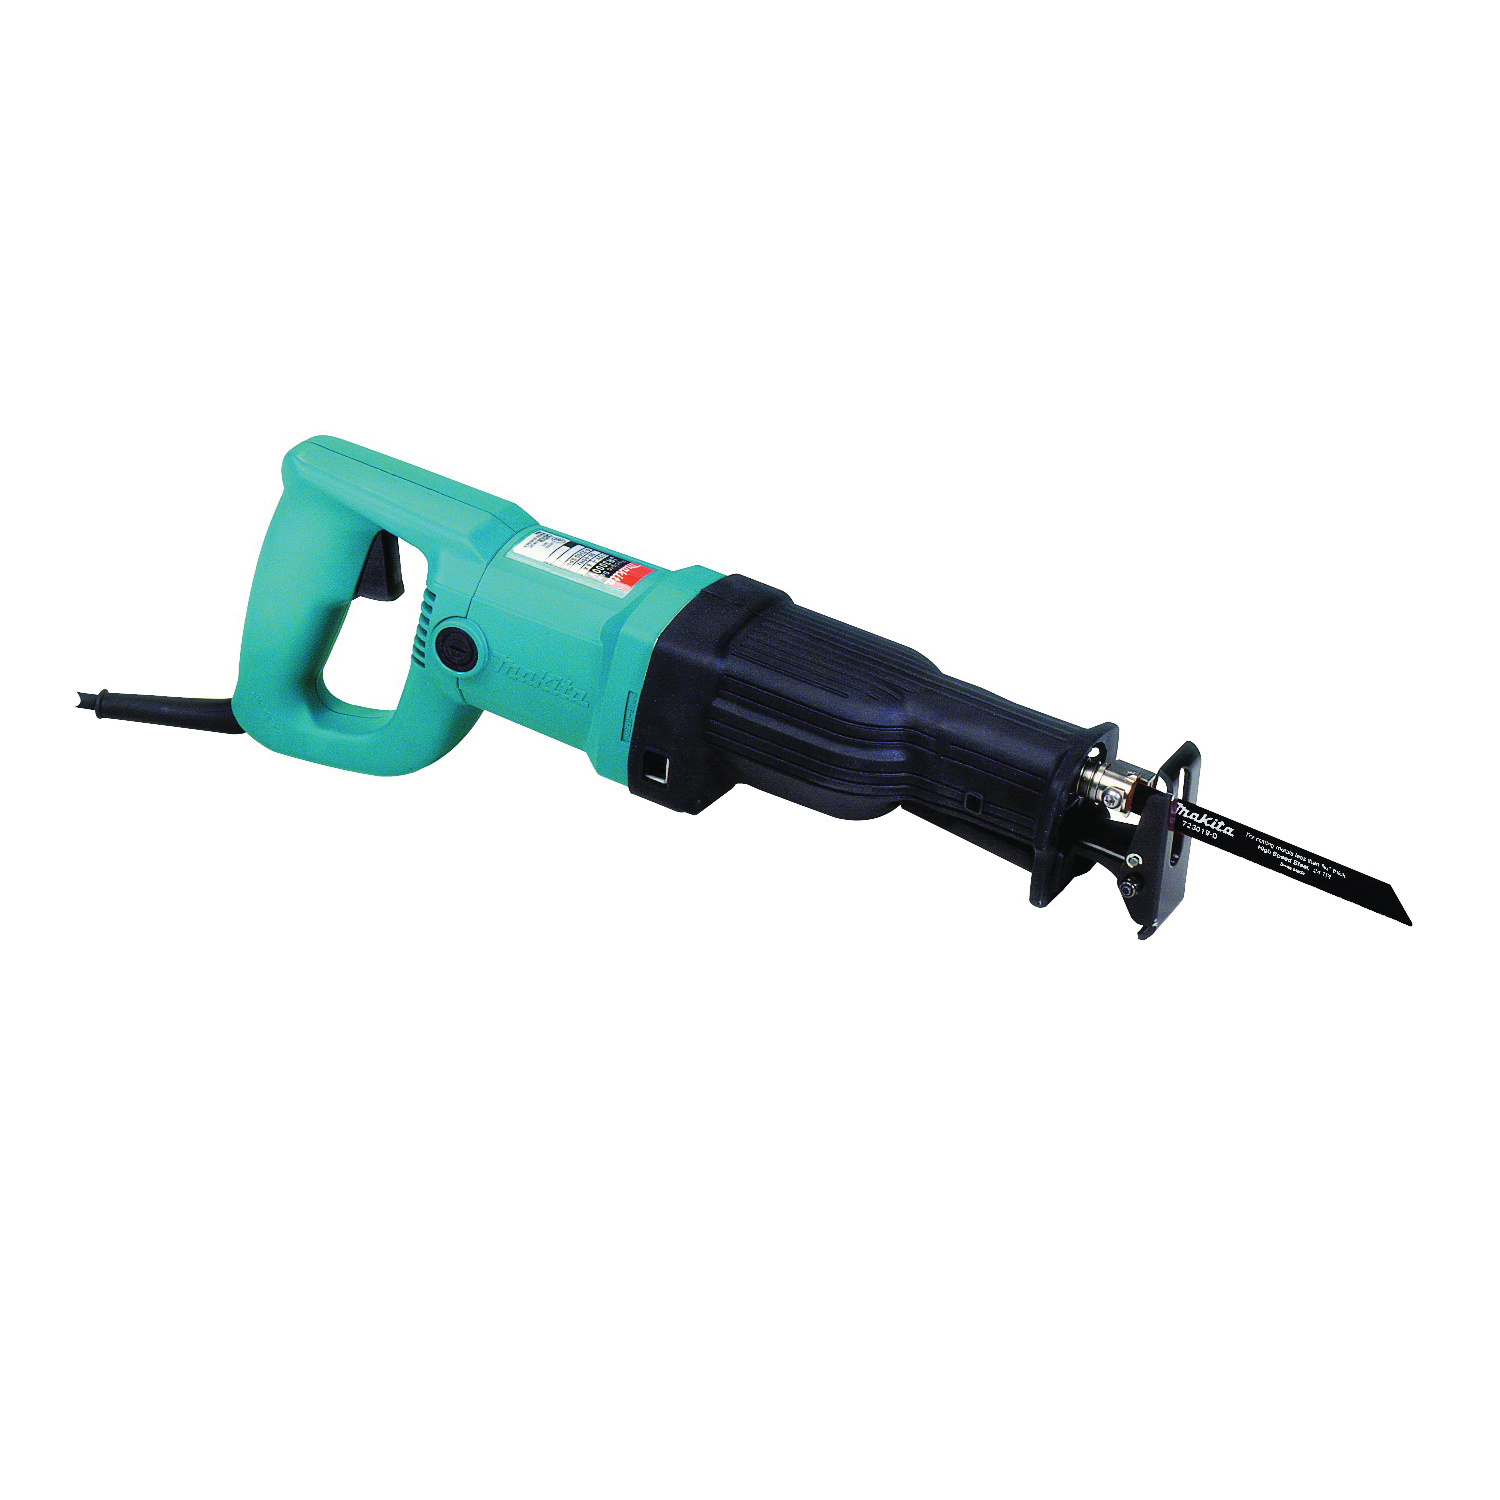 Picture of Makita AVT JR3070CT Reciprocating Saw, 120 V, 15 A, 5-1/8 to 10 in Cutting Capacity, 1-1/4 in L Stroke